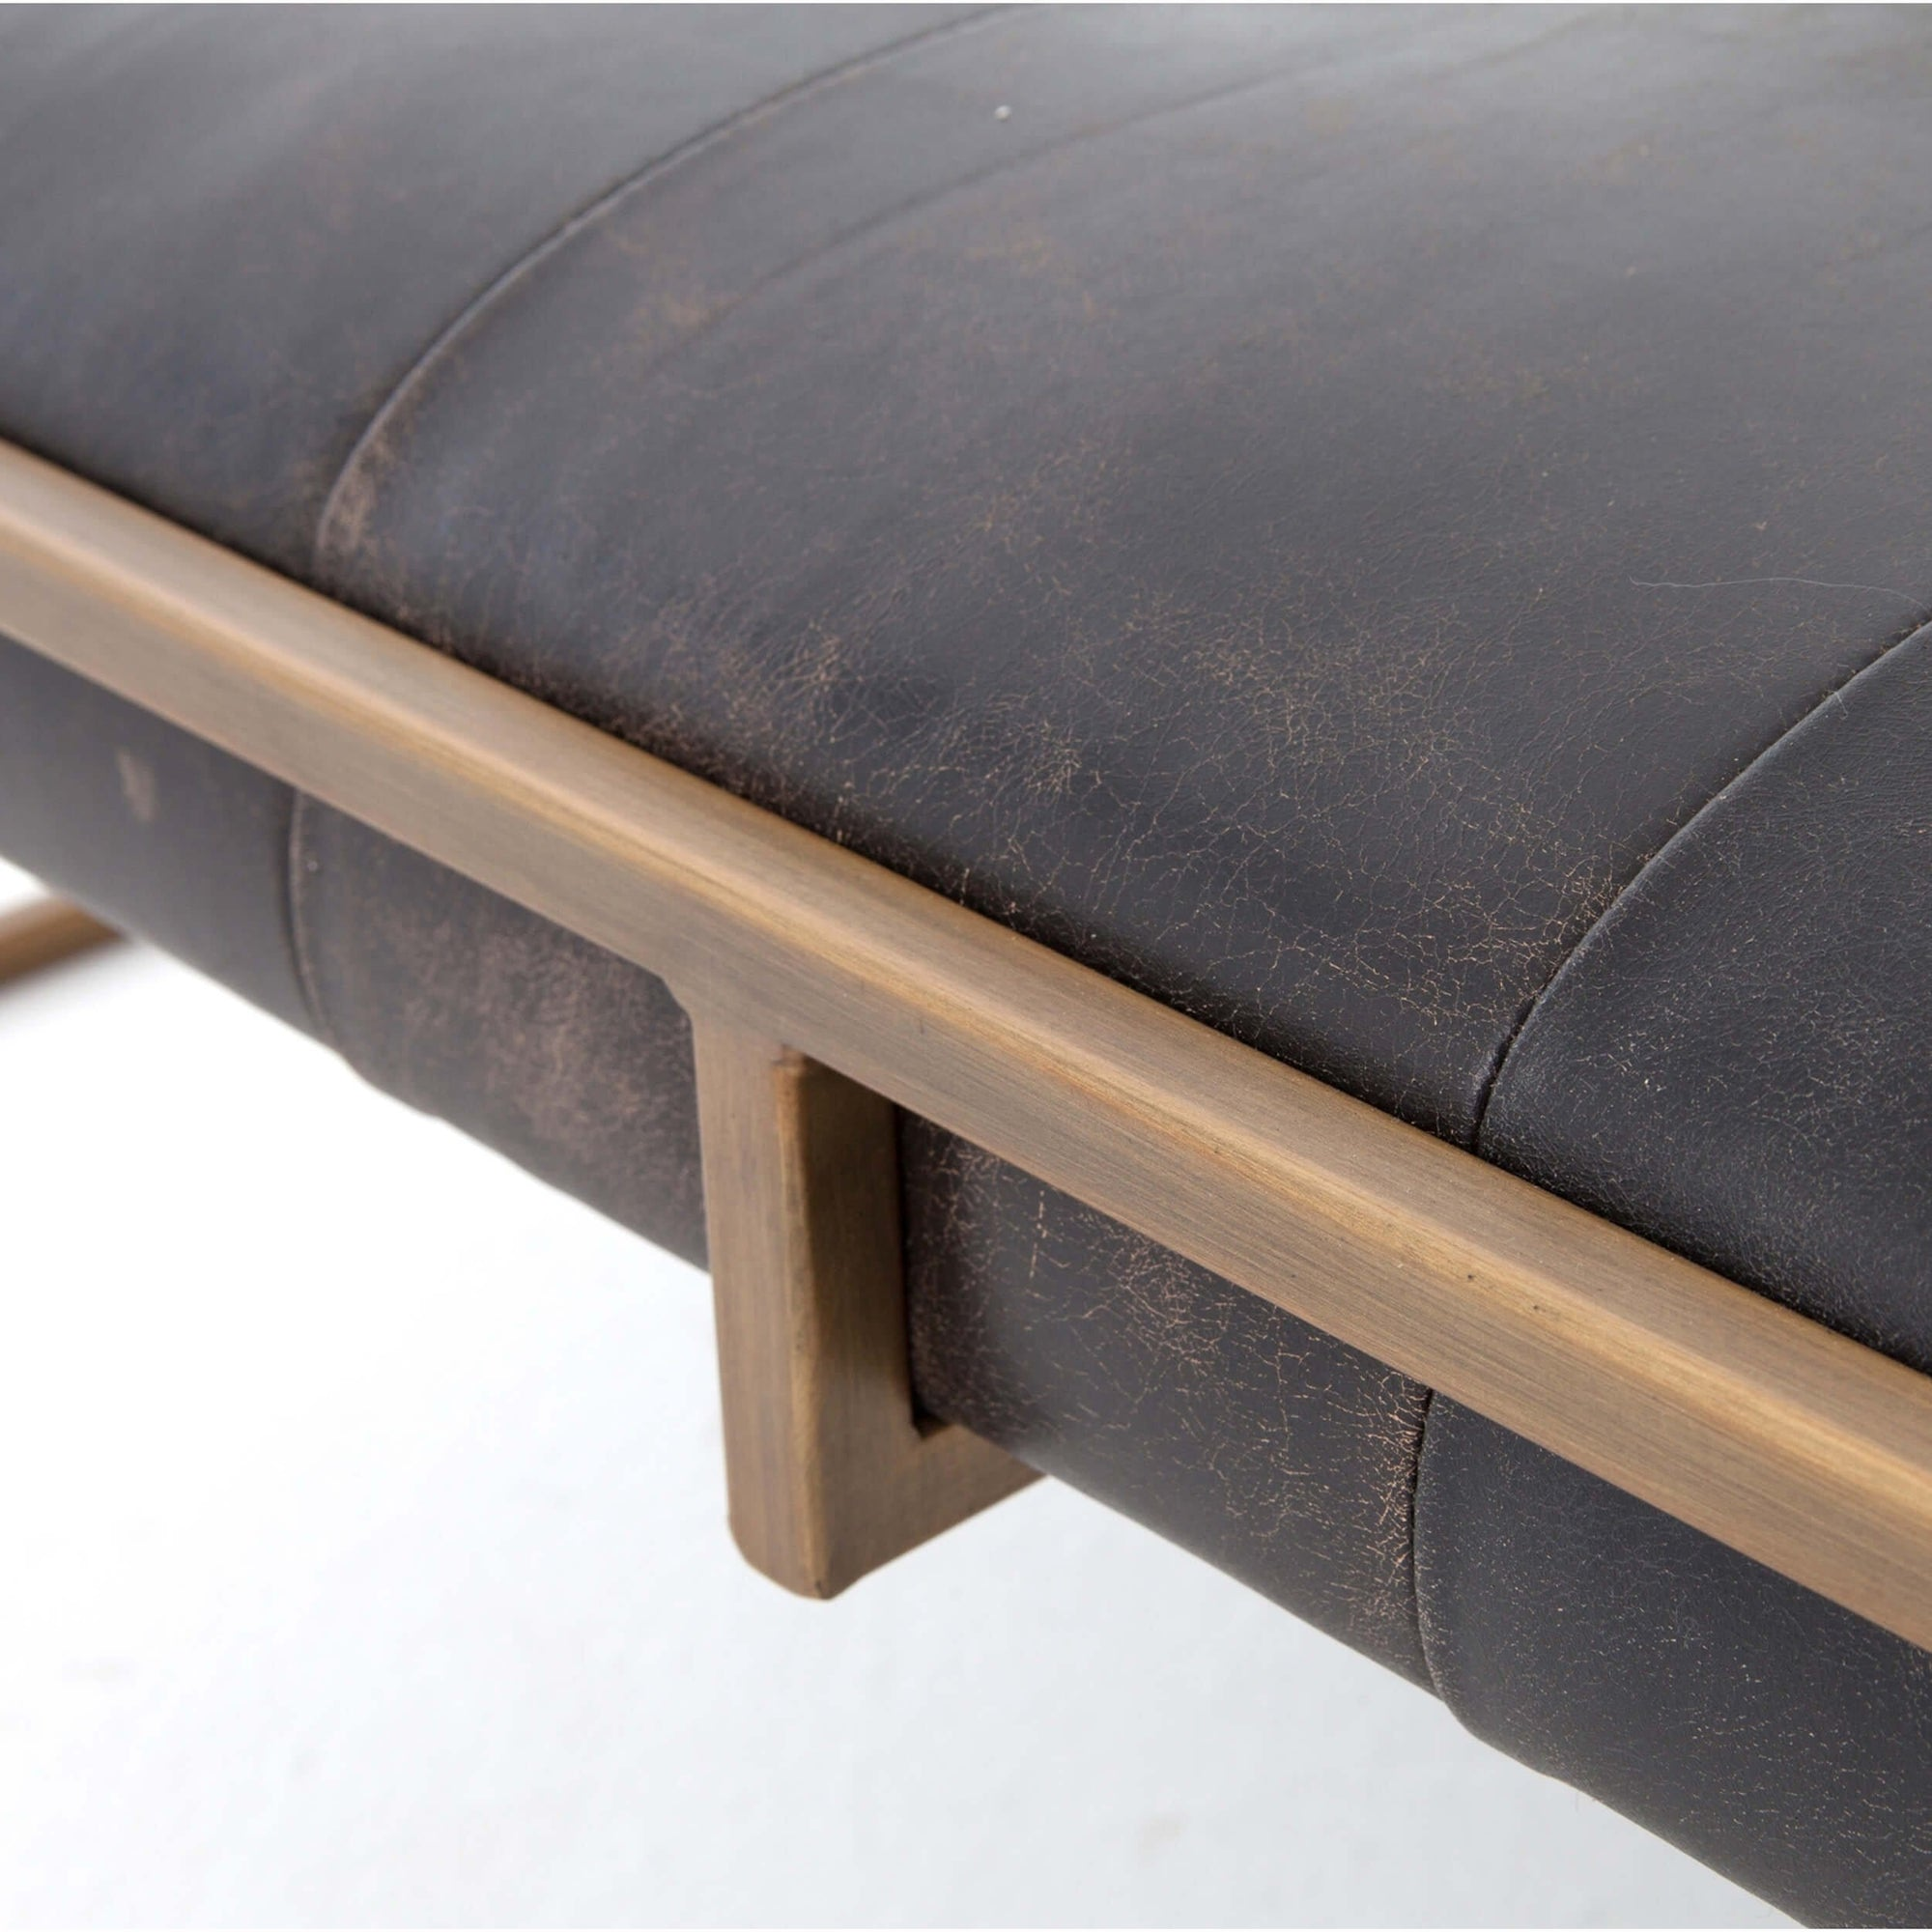 Superb Oxford Square Cocktail Ottoman Rialto Ebony High Fashion Home Andrewgaddart Wooden Chair Designs For Living Room Andrewgaddartcom